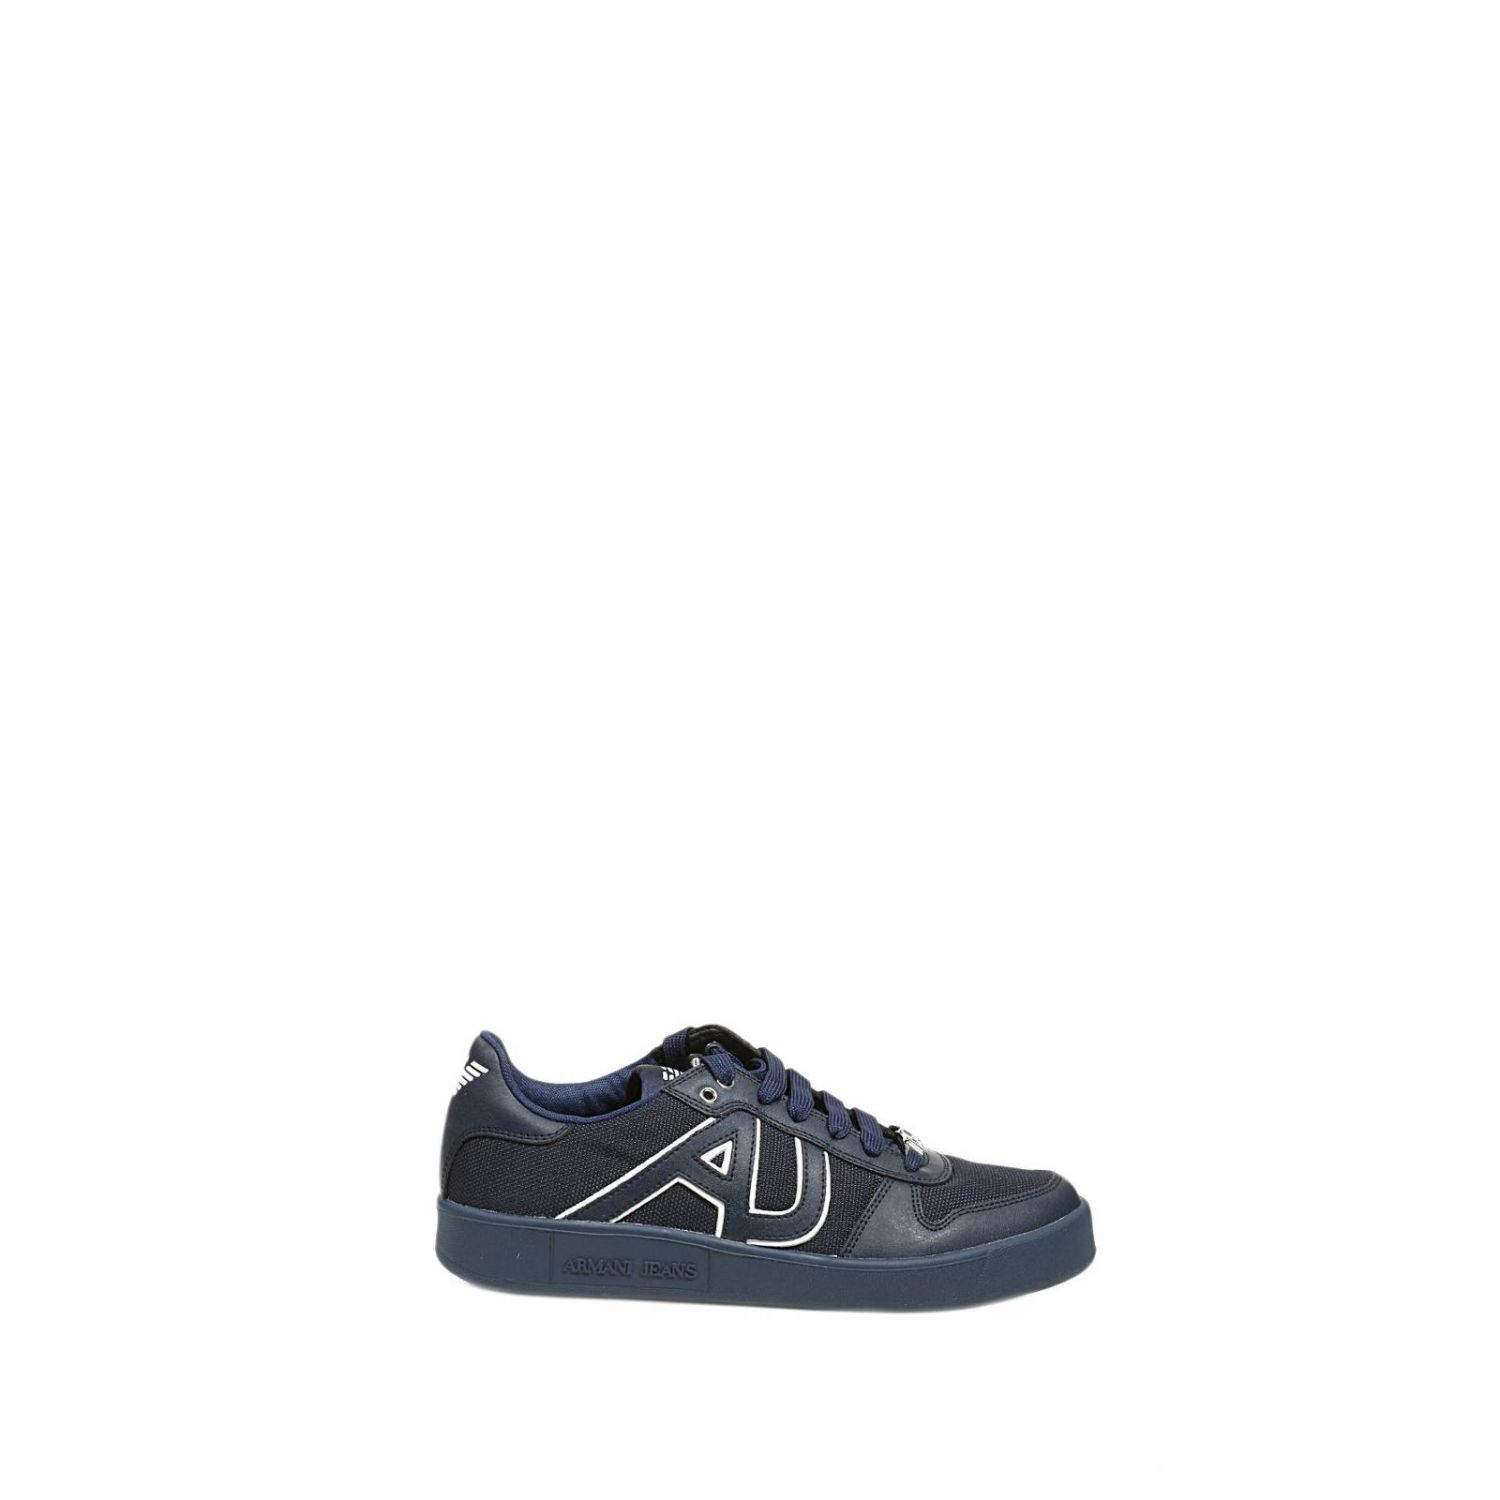 armani shoes tennis leather in blue for lyst